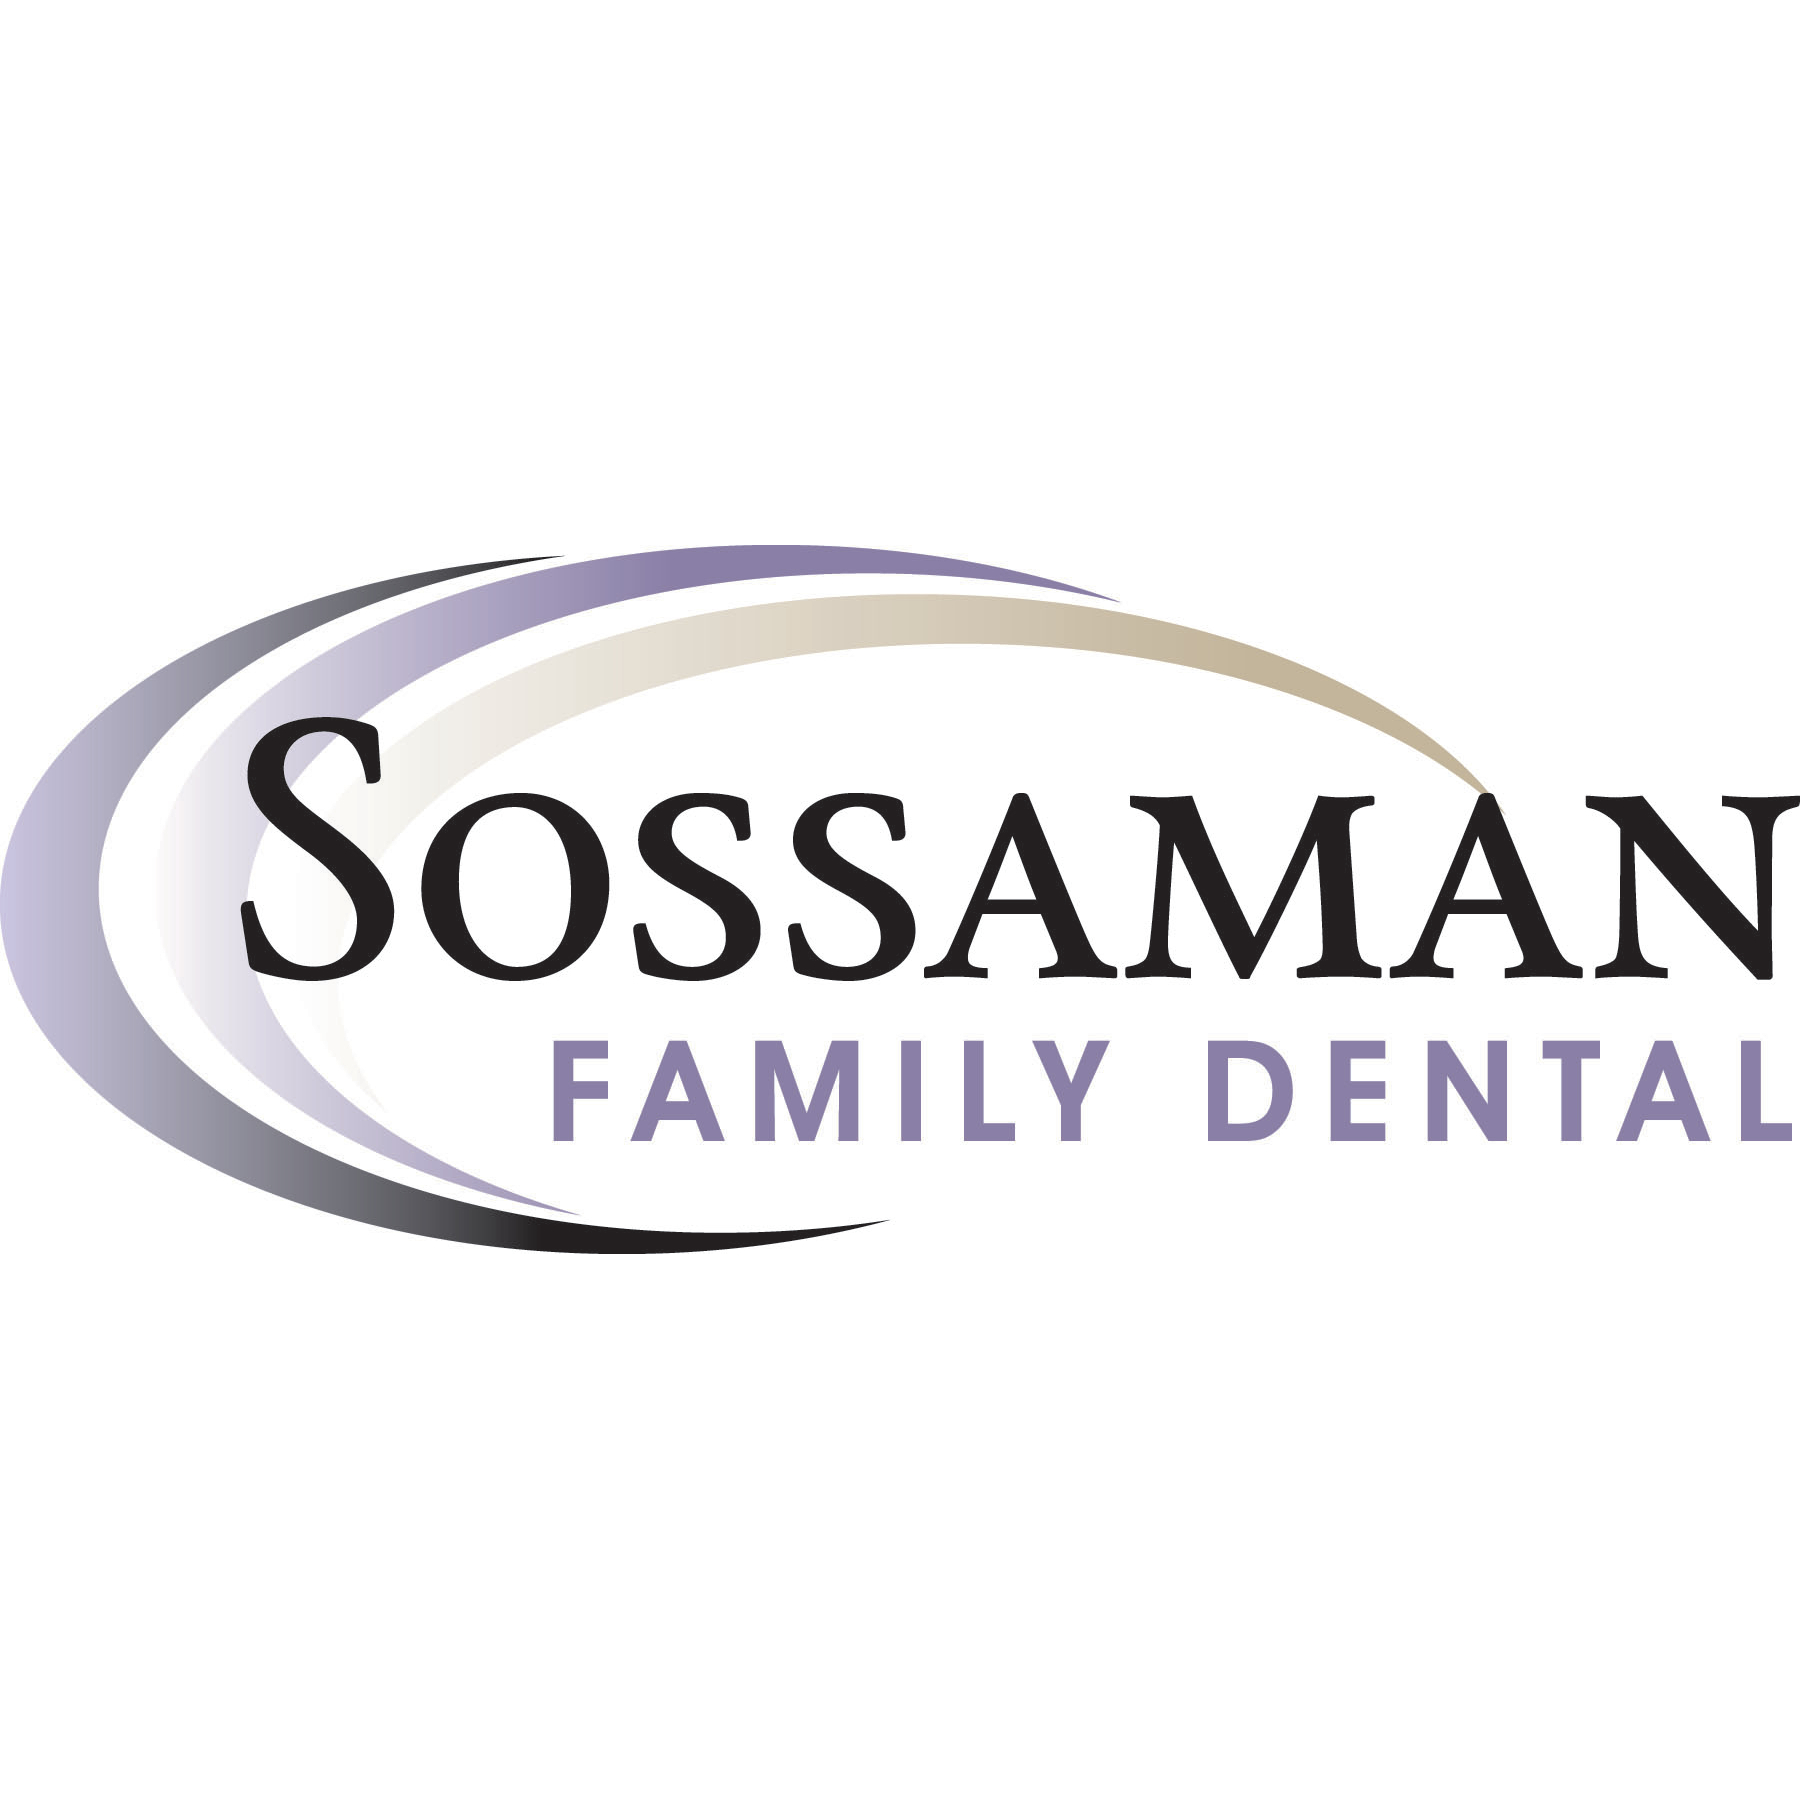 Sossaman Family Dental